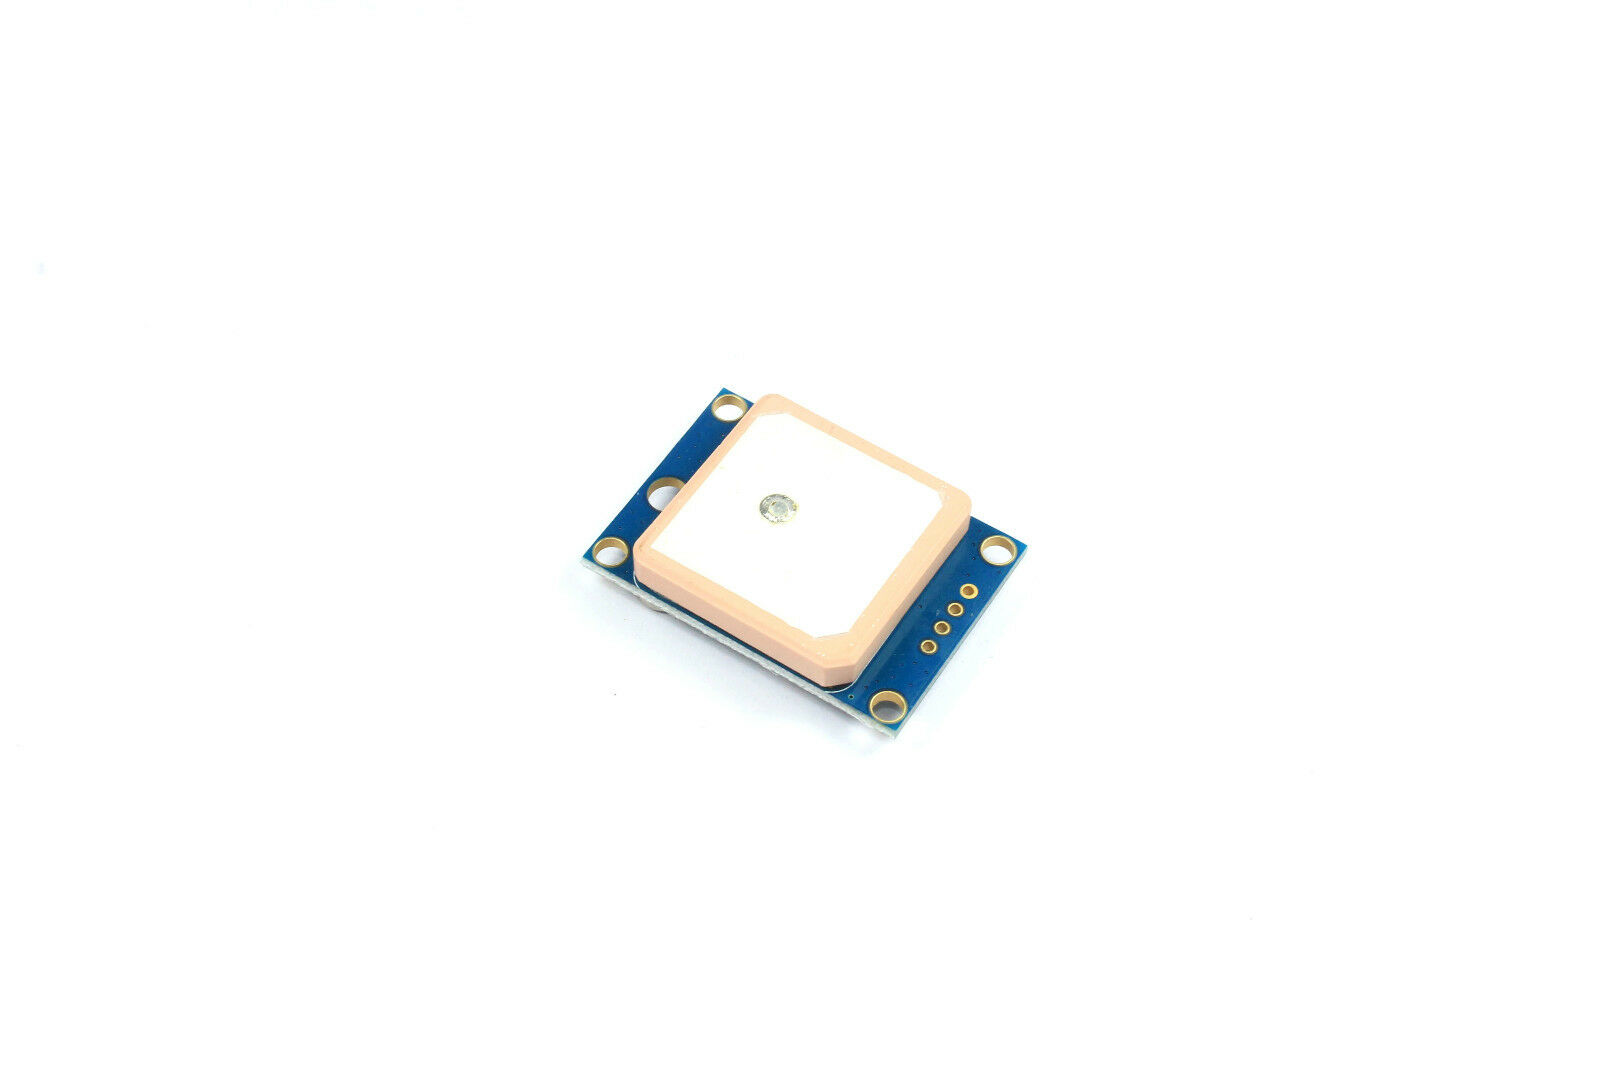 Cat Gps Tracker And Gsm Module Power Question Pcb Board Printed Circuit Assembly Buy Mp1584 Adjustable 3a Dc Converter Step Down Voltage Regulator